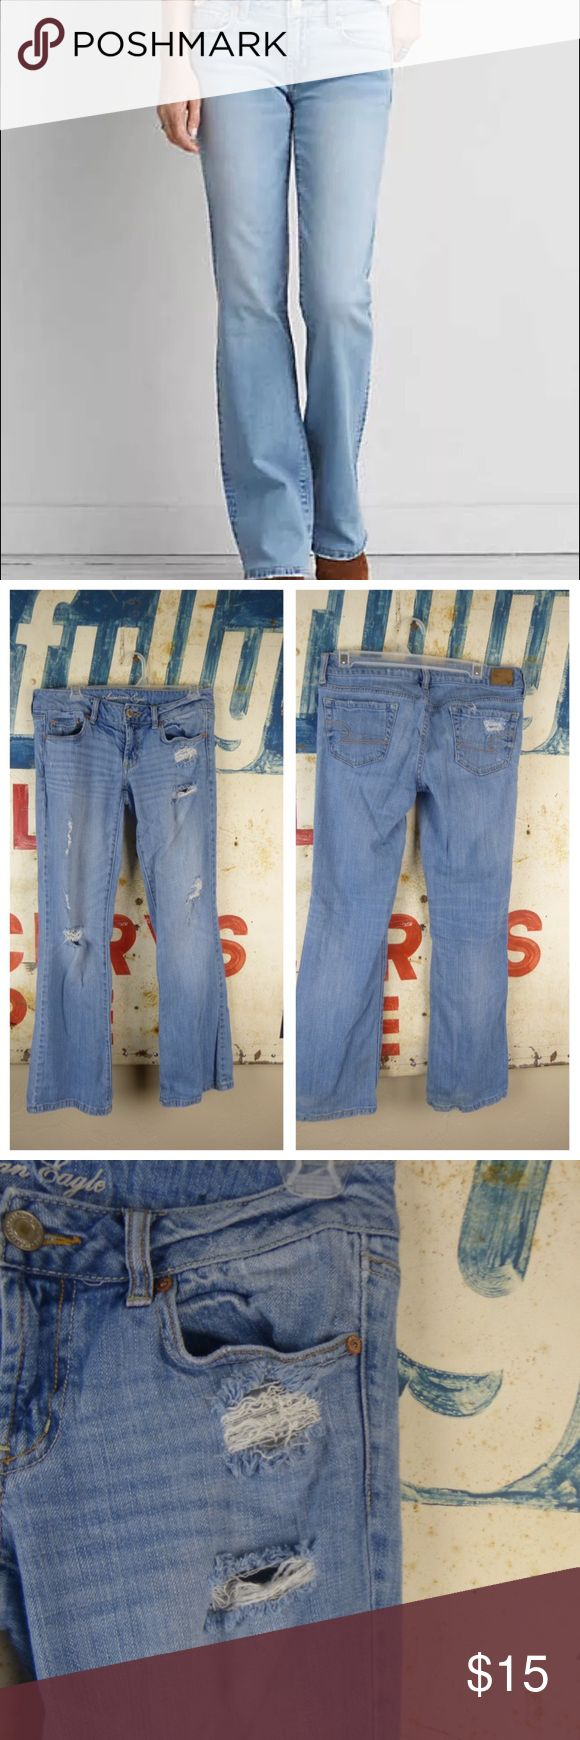 """American Eagle Outfitters Favorite Boyfriend Jeans American Eagle Outfitters Distressed Favorite Boyfriend Jeans Size 6 Gently used  No flaws  98% cotton and 2% spandex 7"""" rise 16"""" across the waist 31"""" inseam American Eagle Outfitters Jeans Boyfriend"""